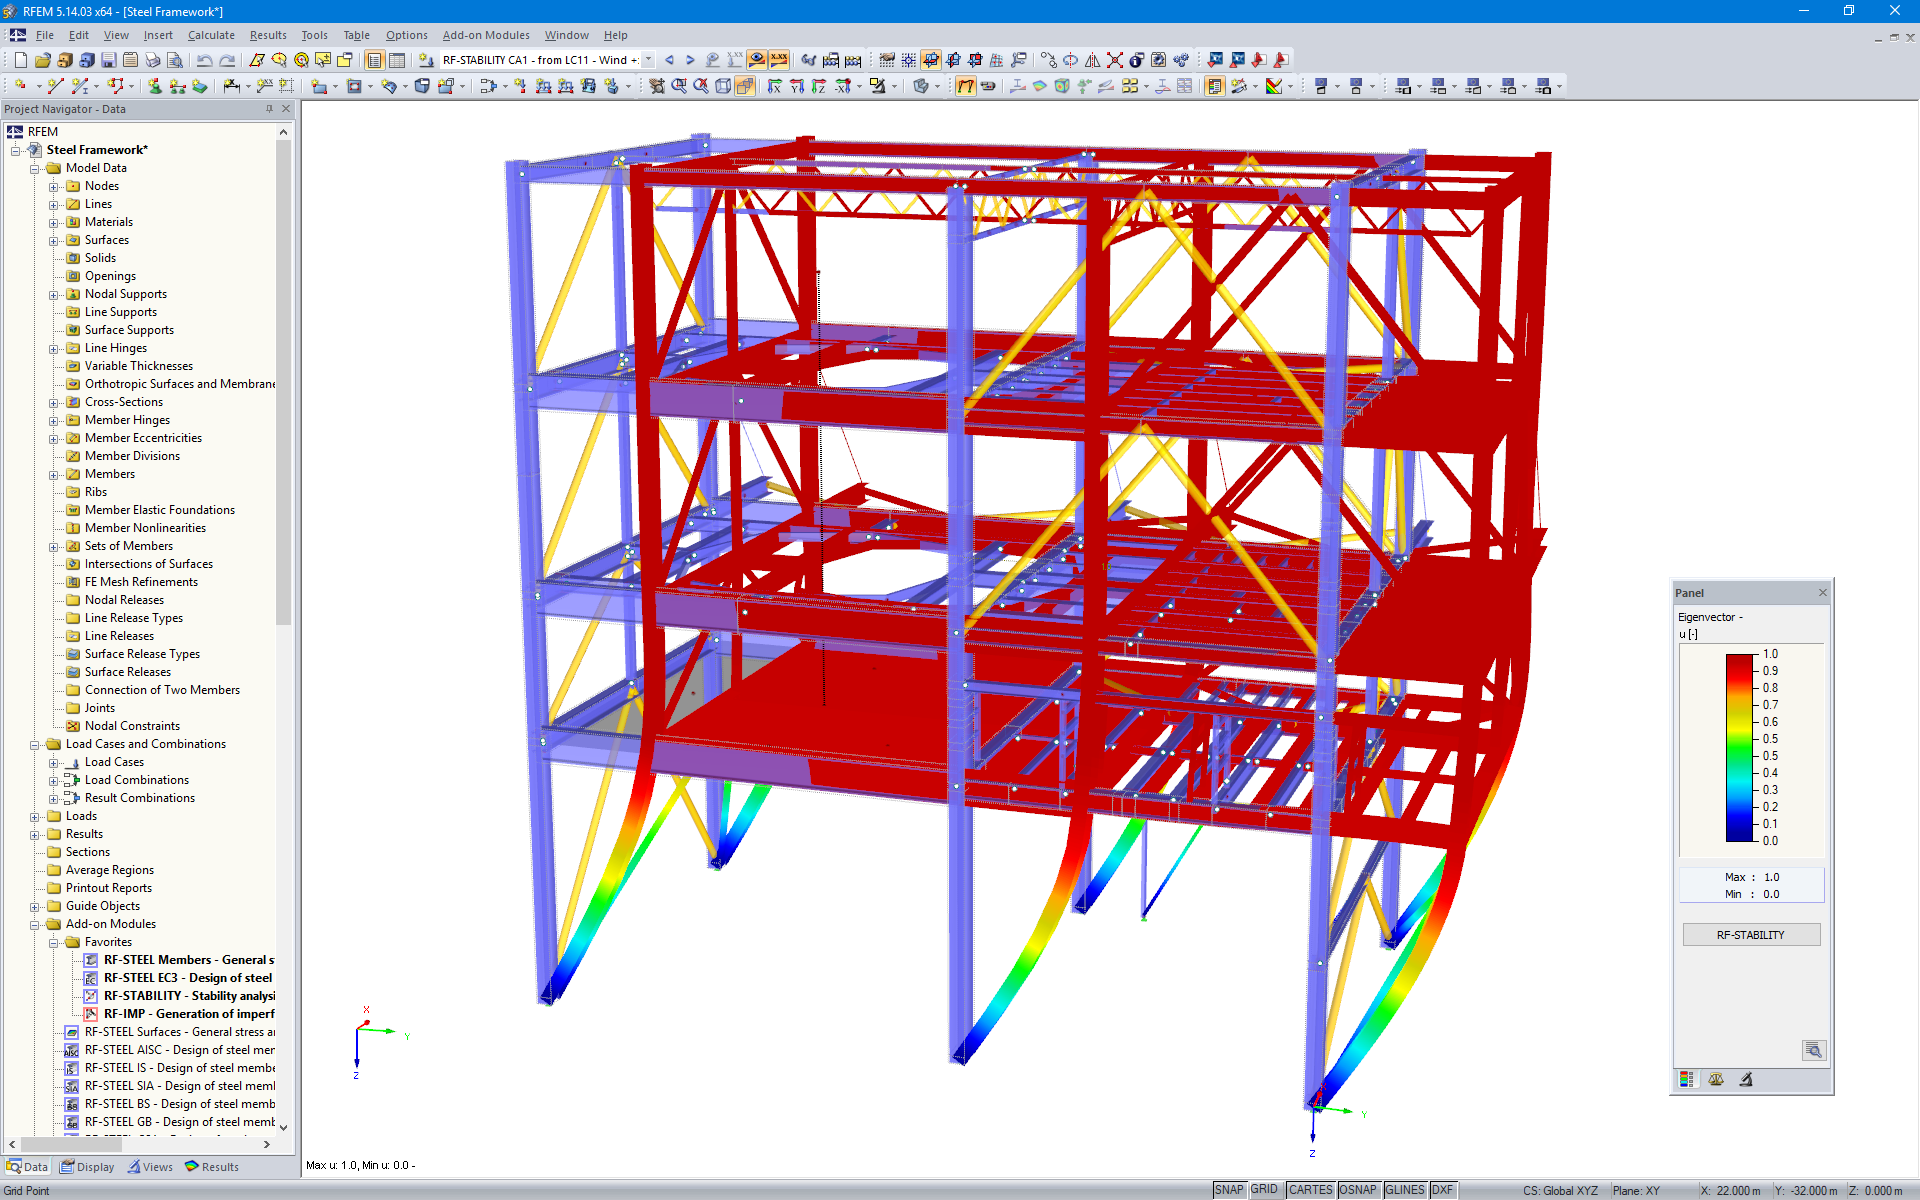 Graphical Representation of a Steel Framework's Buckling Mode Shape in RFEM